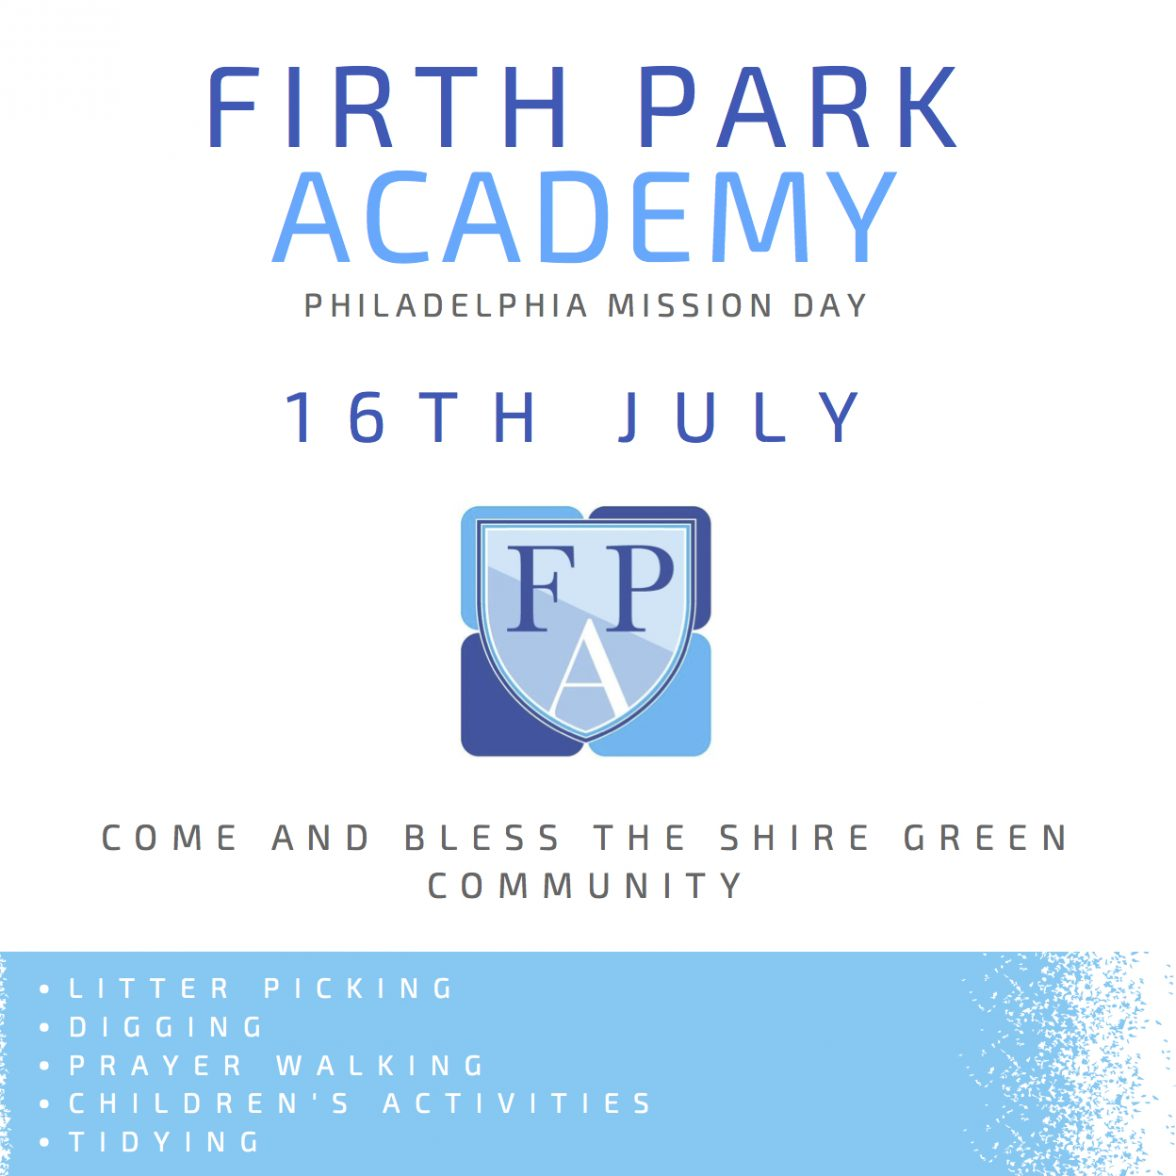 Firth Park Academy Mission Day